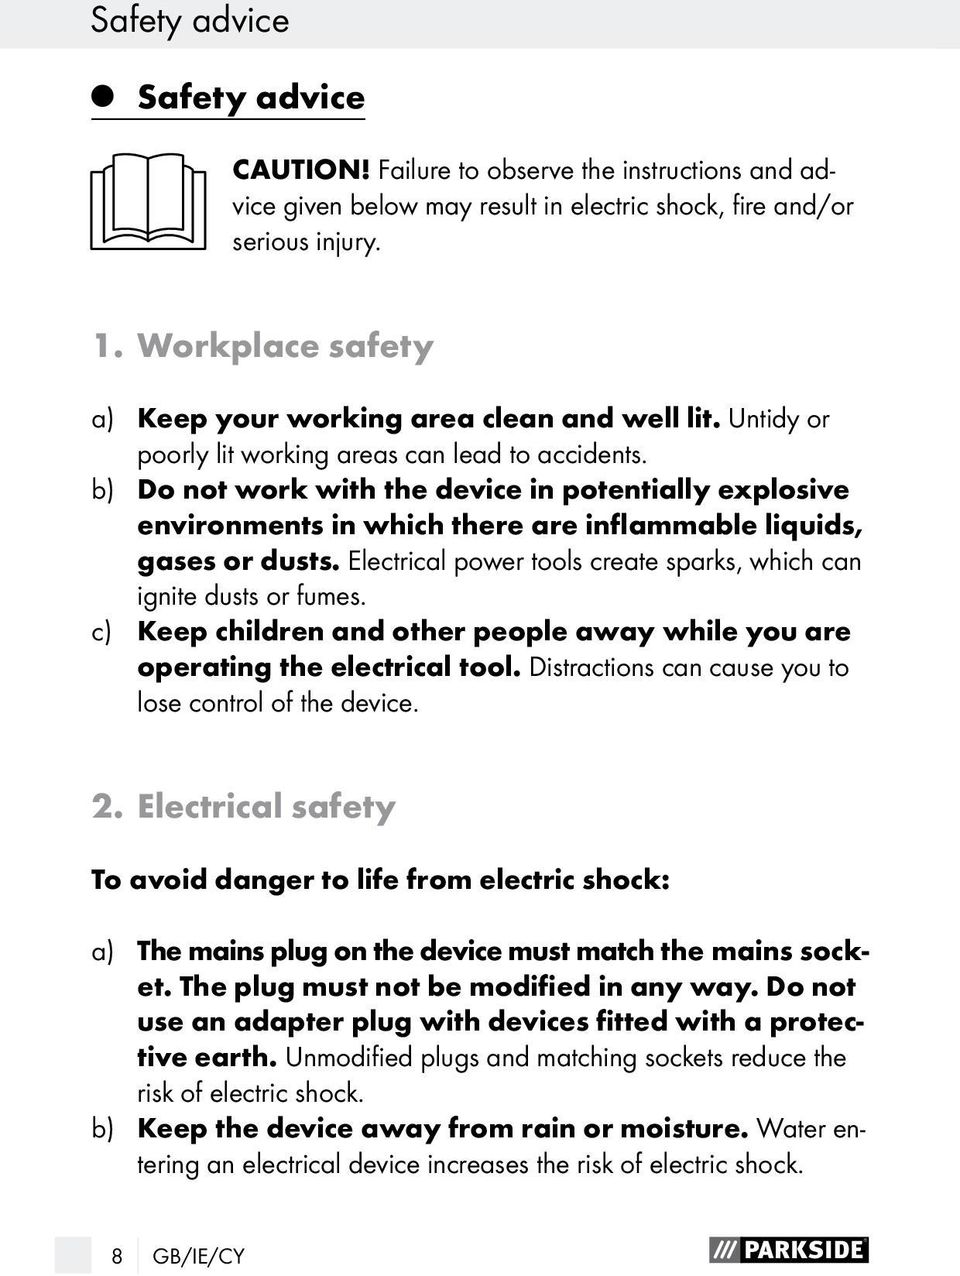 b) Do not work with the device in potentially explosive environments in which there are inflammable liquids, gases or dusts. Electrical power tools create sparks, which can ignite dusts or fumes.